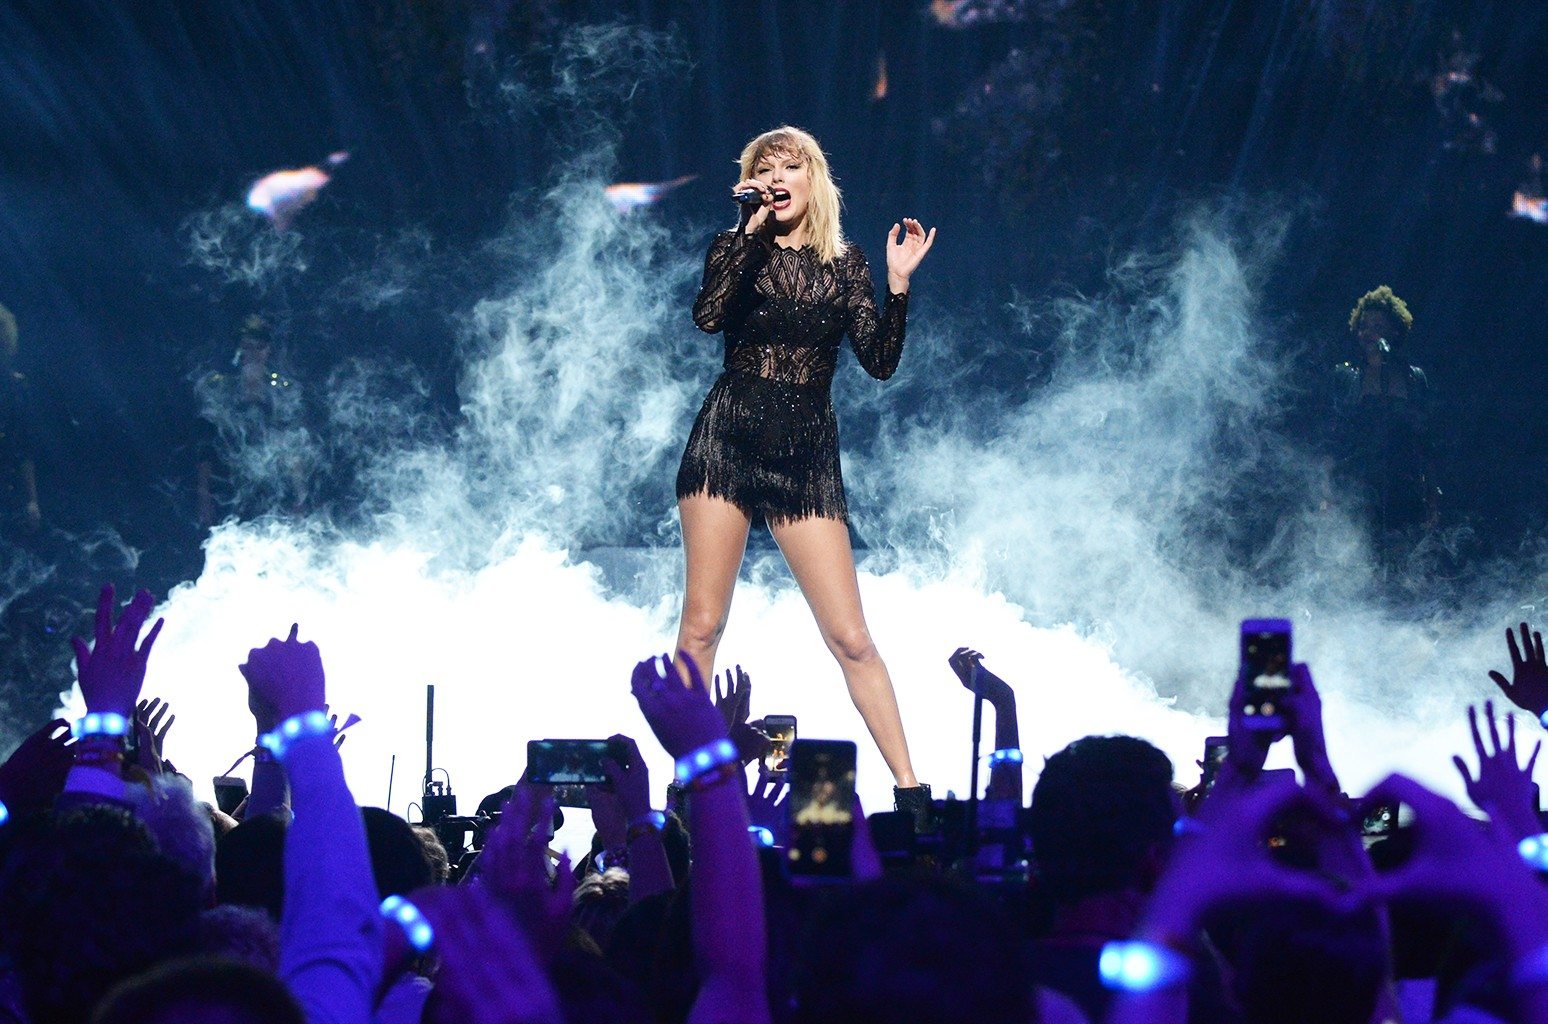 Taylor Swift S Most Loyal And Verified Fans Get First Crack At Reputation Tour Tickets Billboard